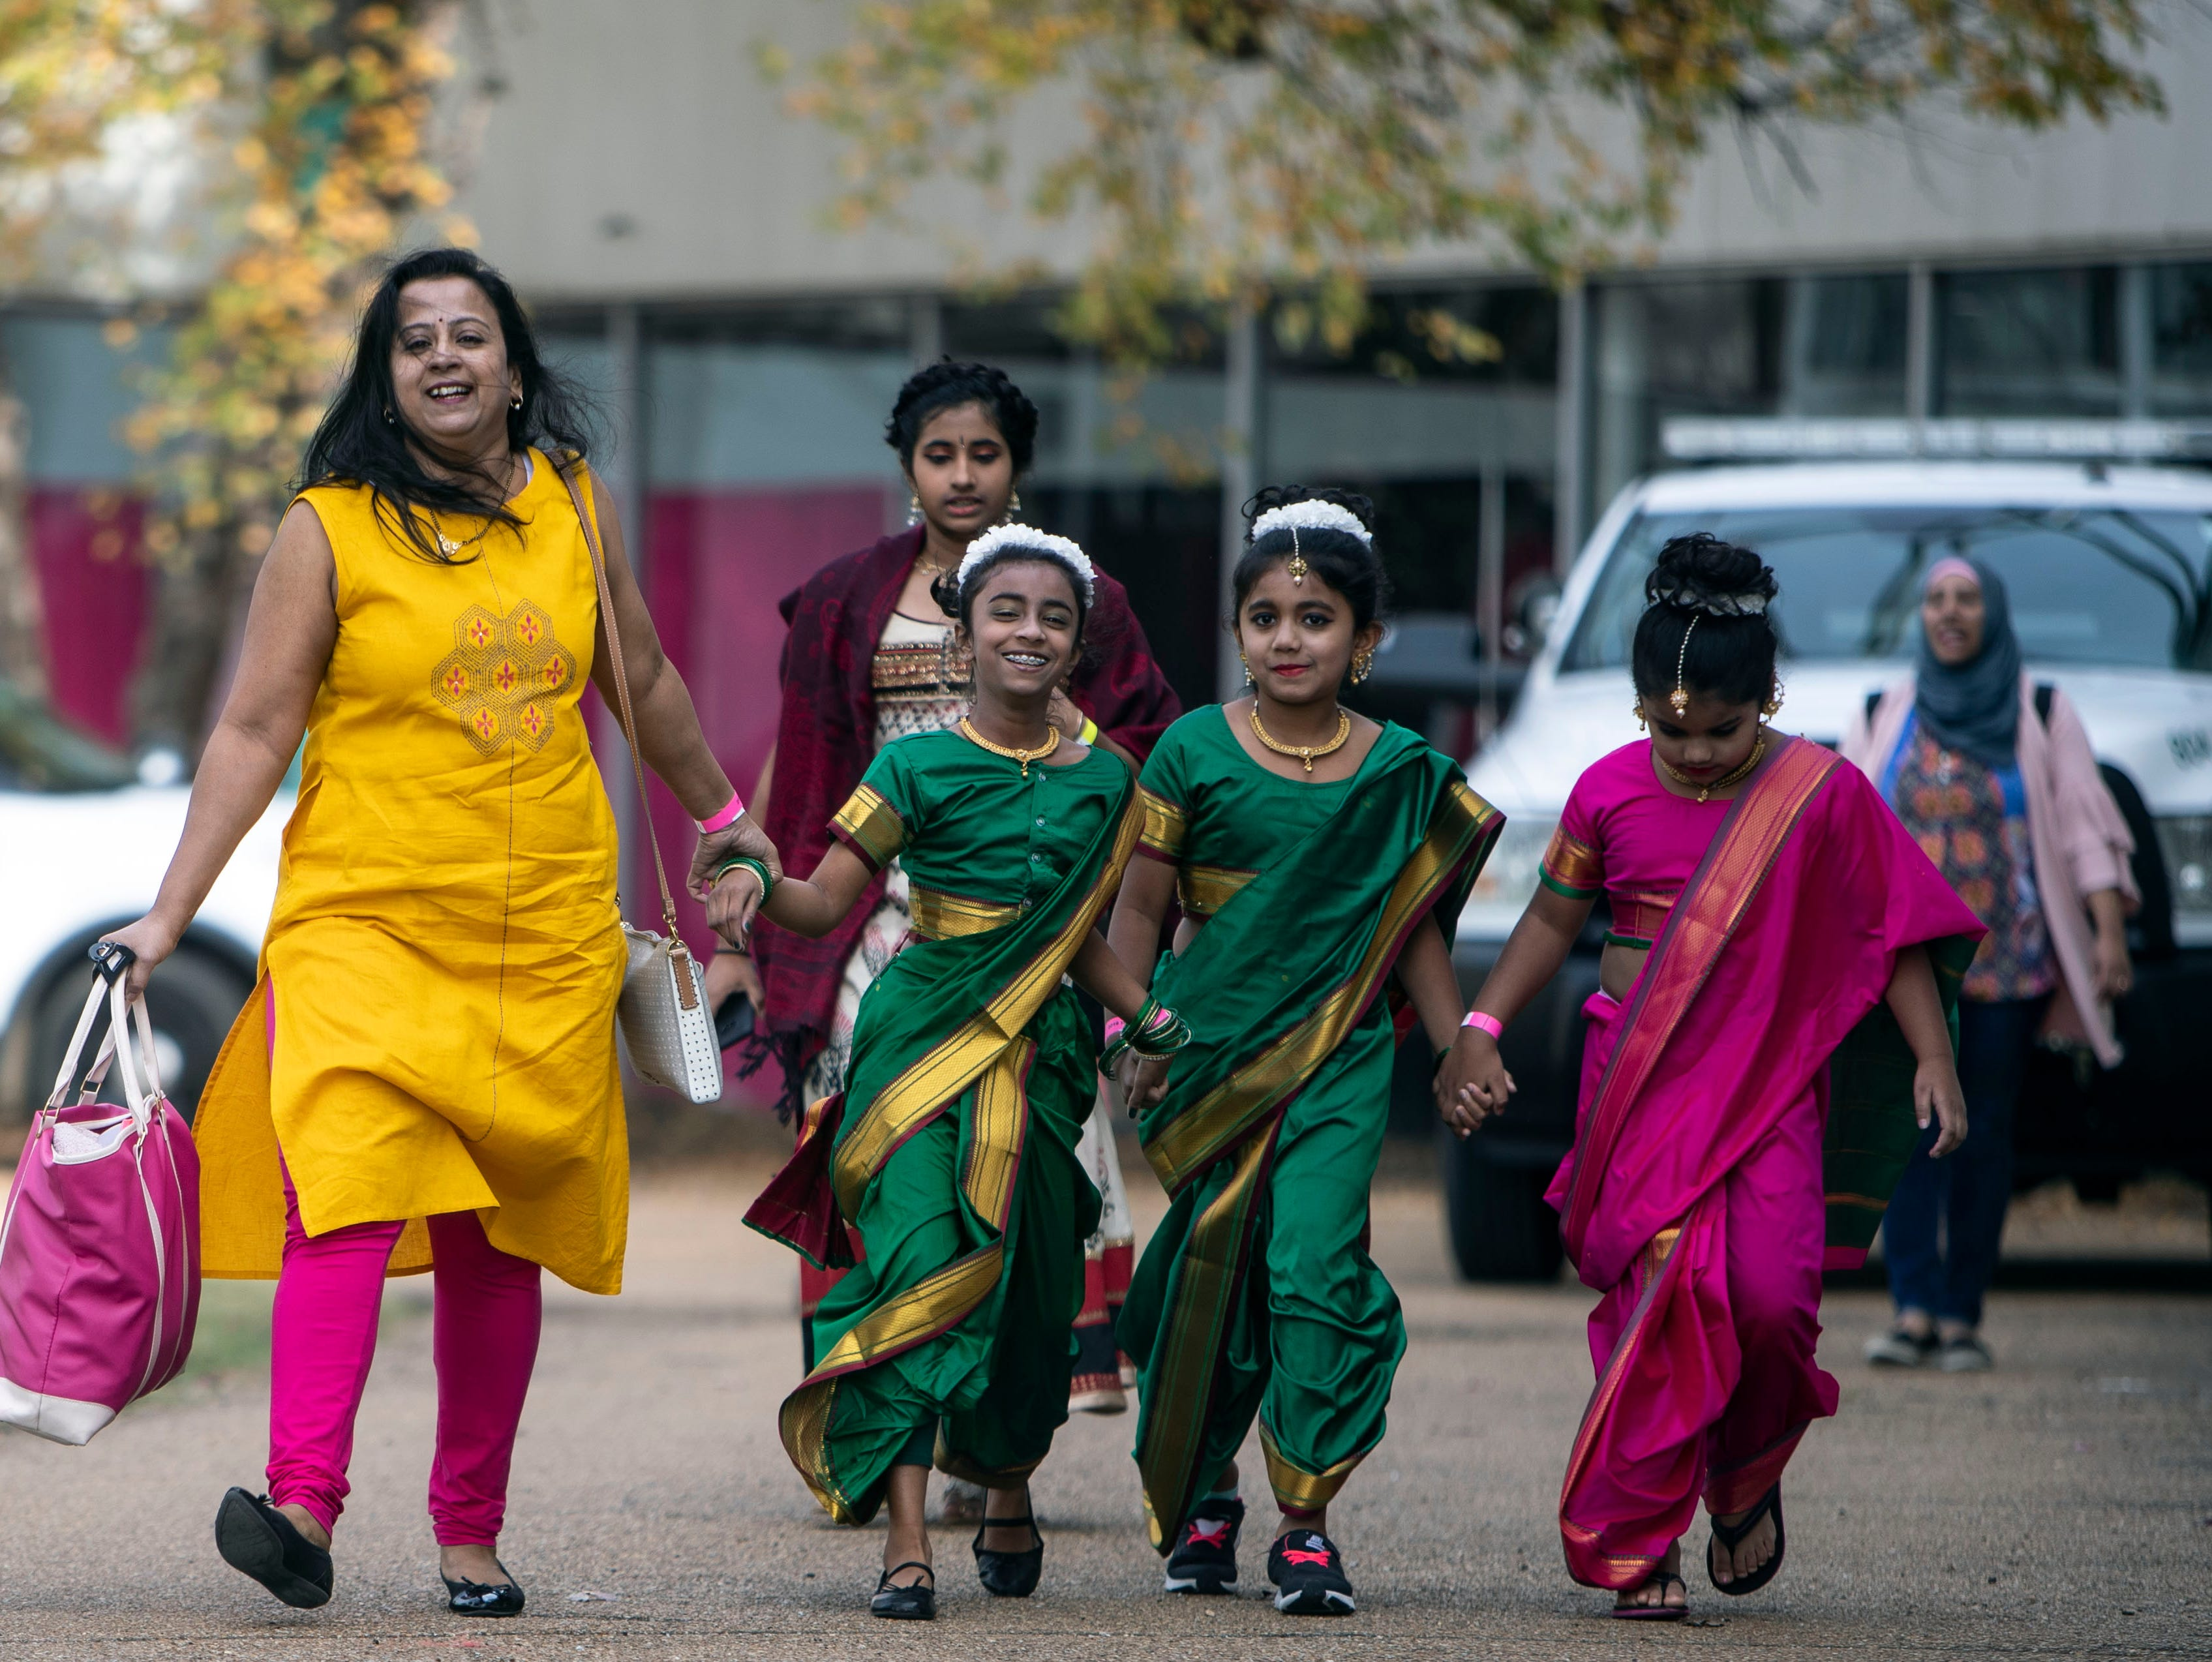 India Fest 2018 at the Agricenter International in Memphis Tennessee Saturday November 3, 2018.